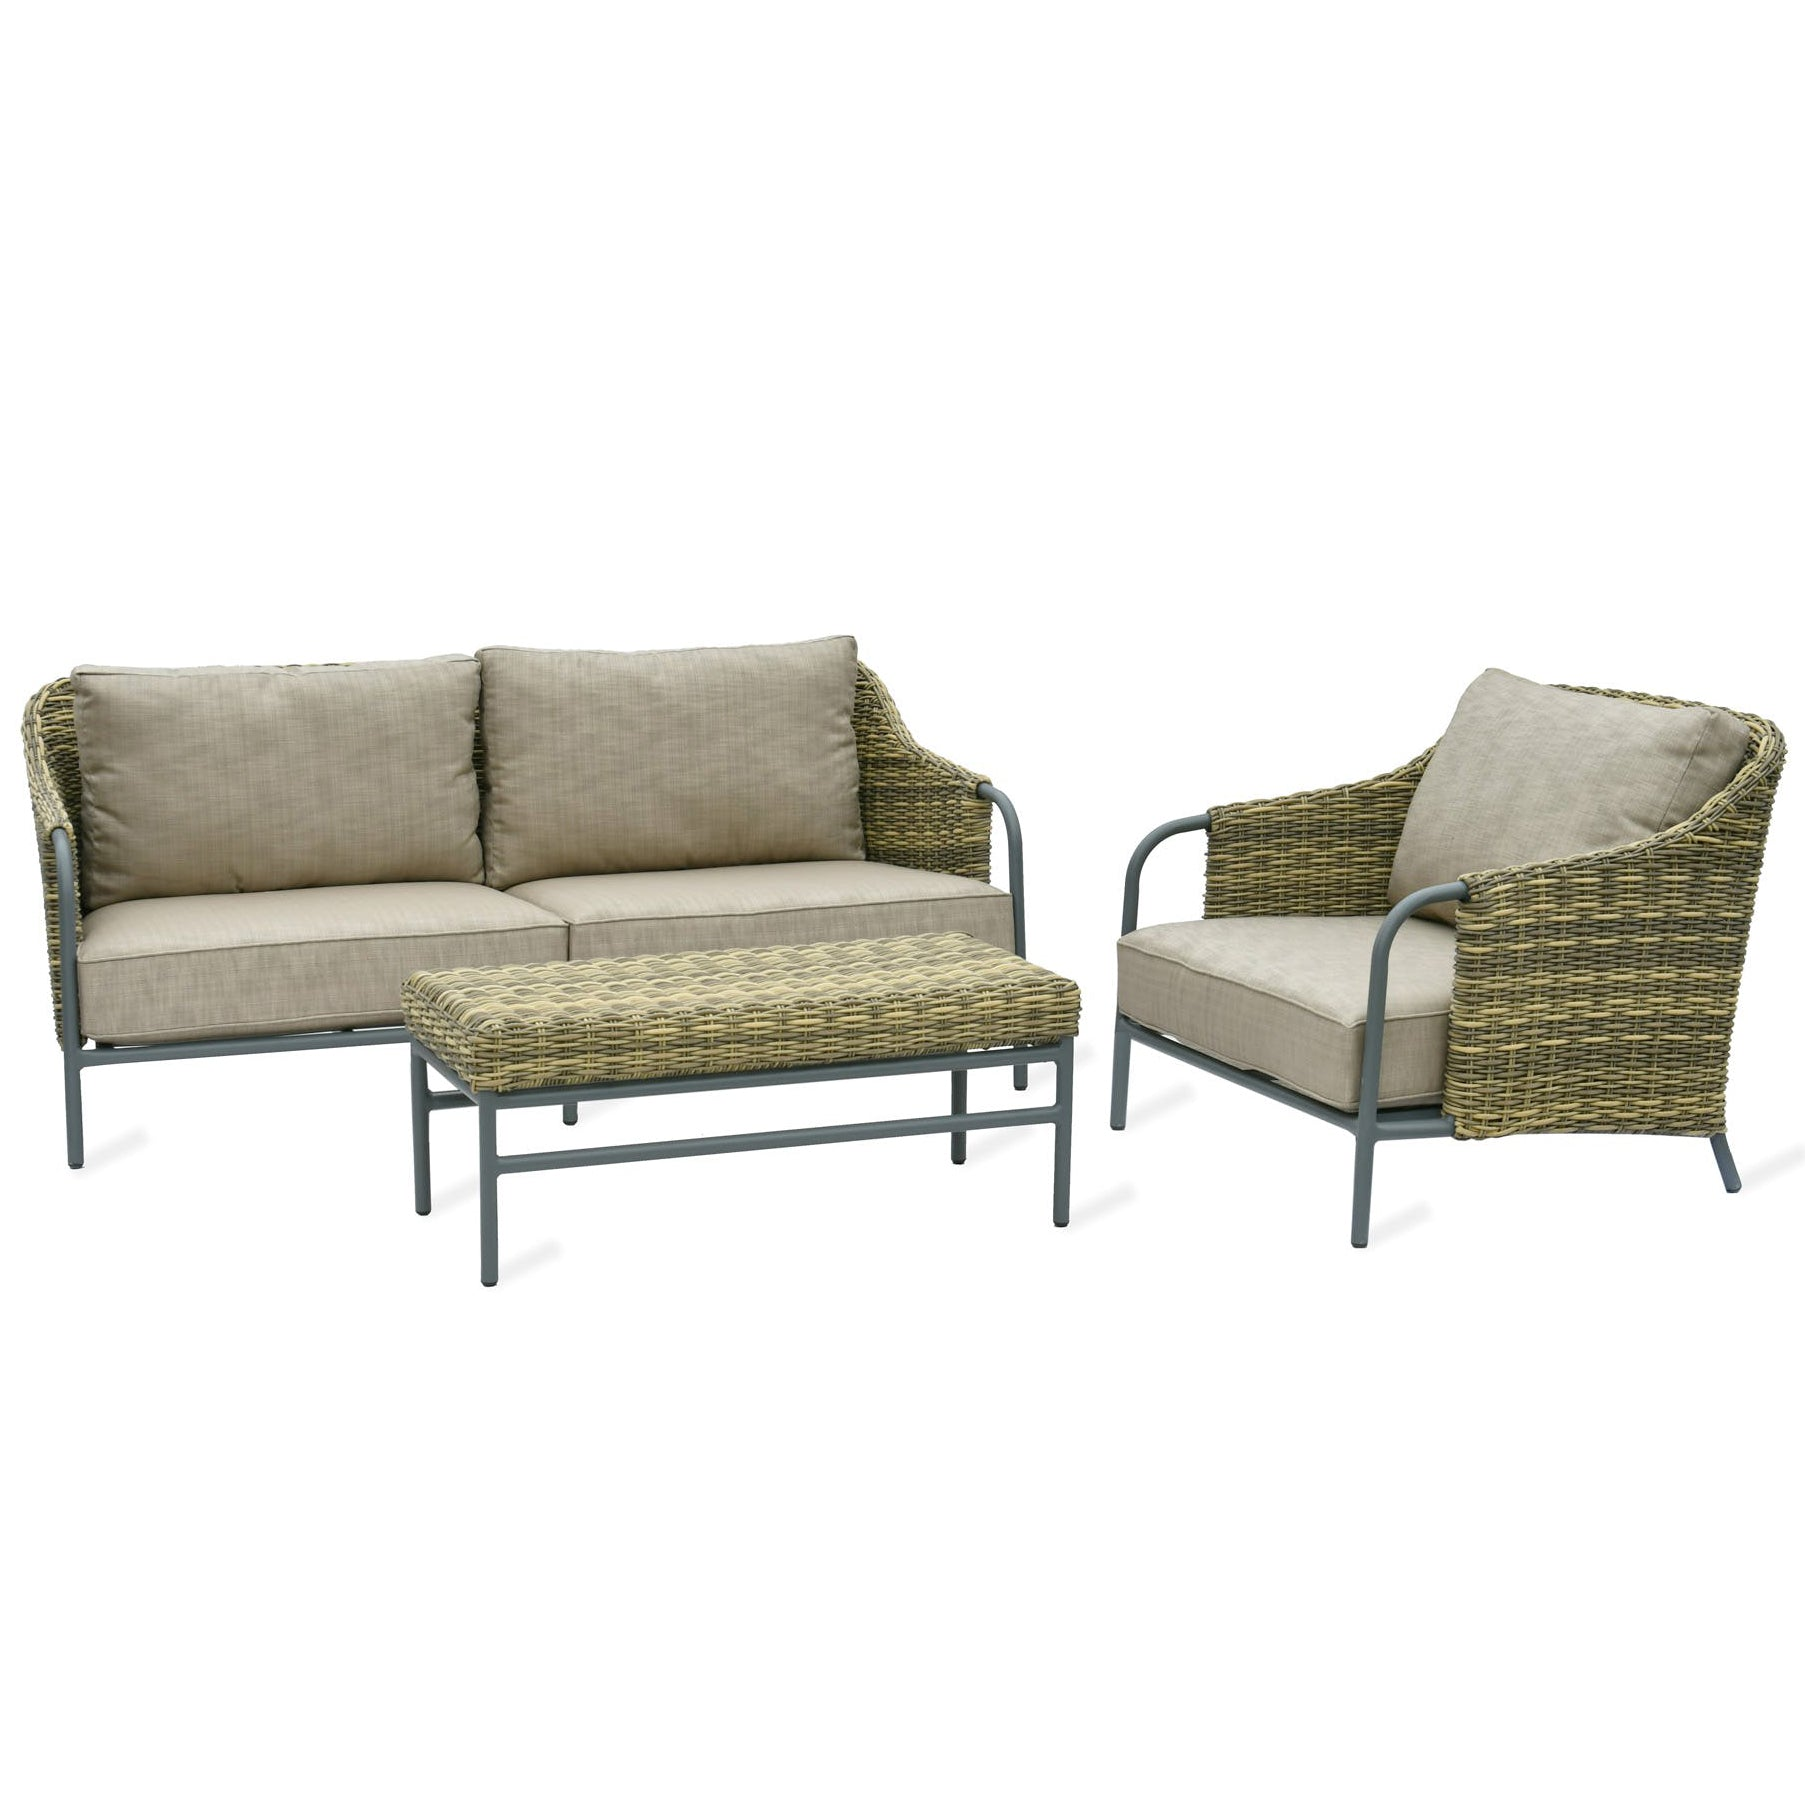 Sofa-Set SHOTT (4591607709827)